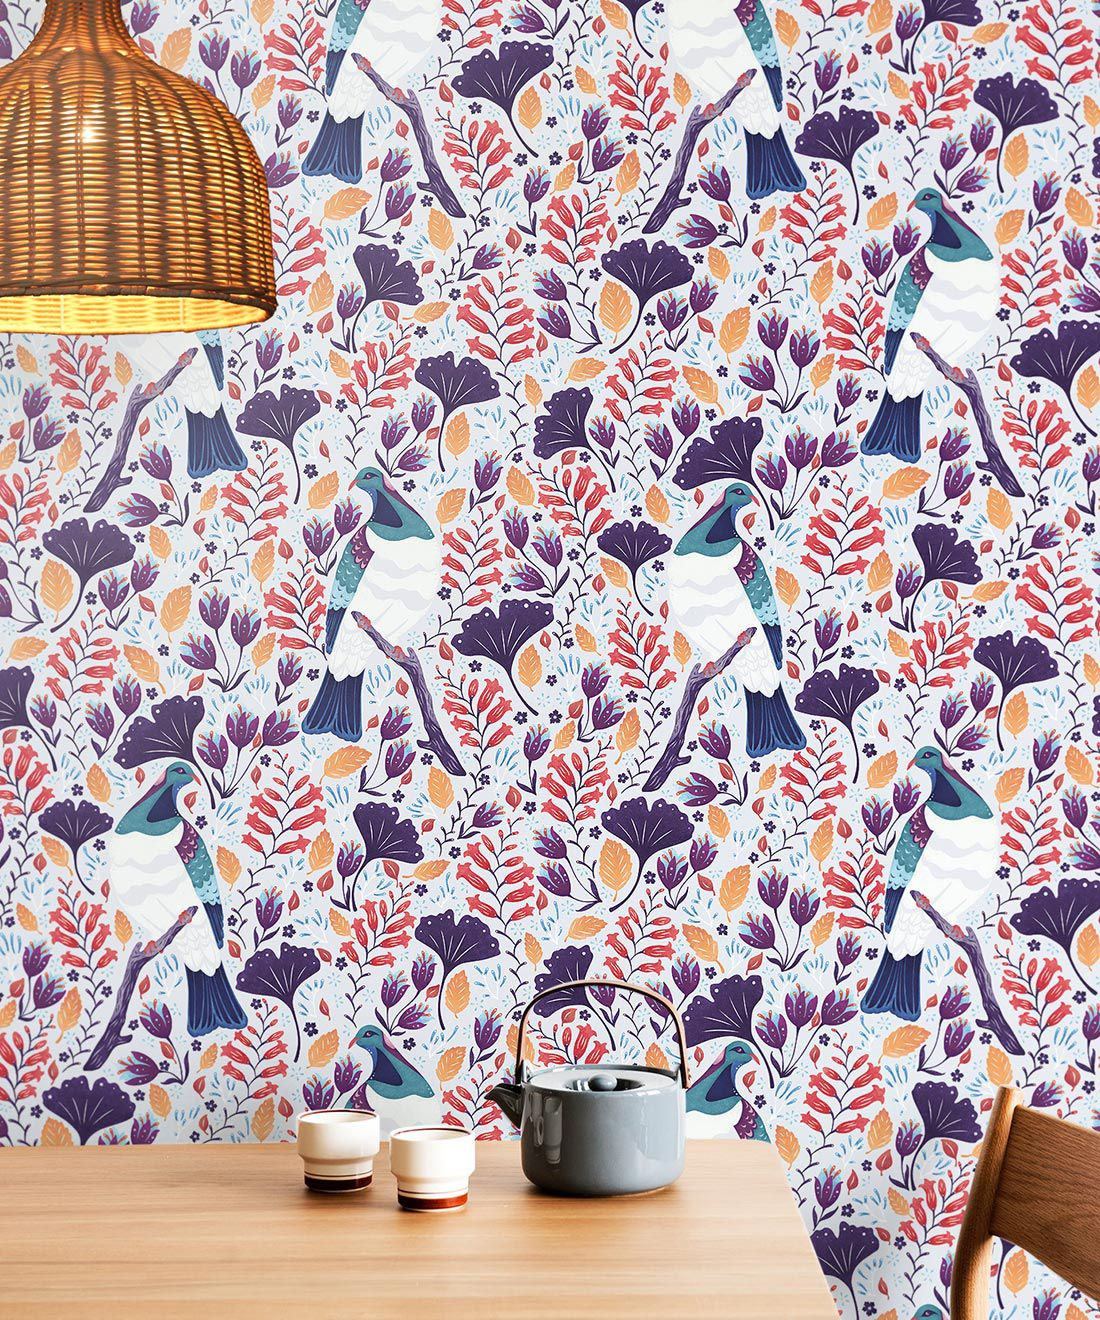 Kereru Wallpaper • Wood Pigeon• Bird Wallpaper •Assorted Color Wallpaper Insitu